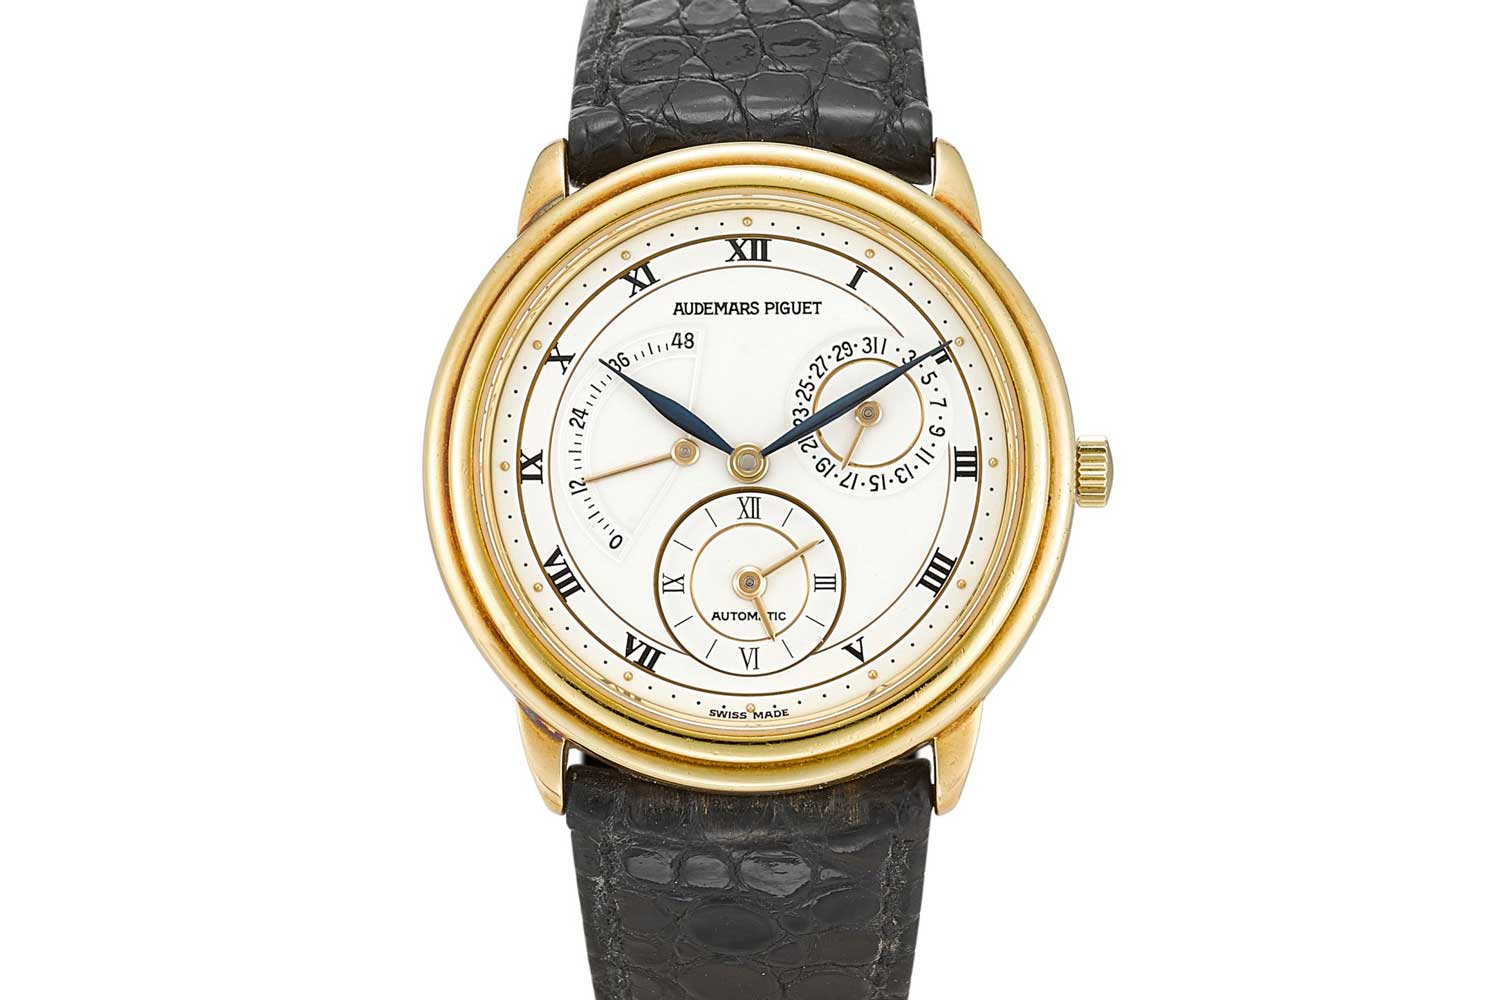 Audemars Piguet Dual Time reference 25685.002 - A yellow gold dual time zone wristwatch with date and power reserve indication from 1995